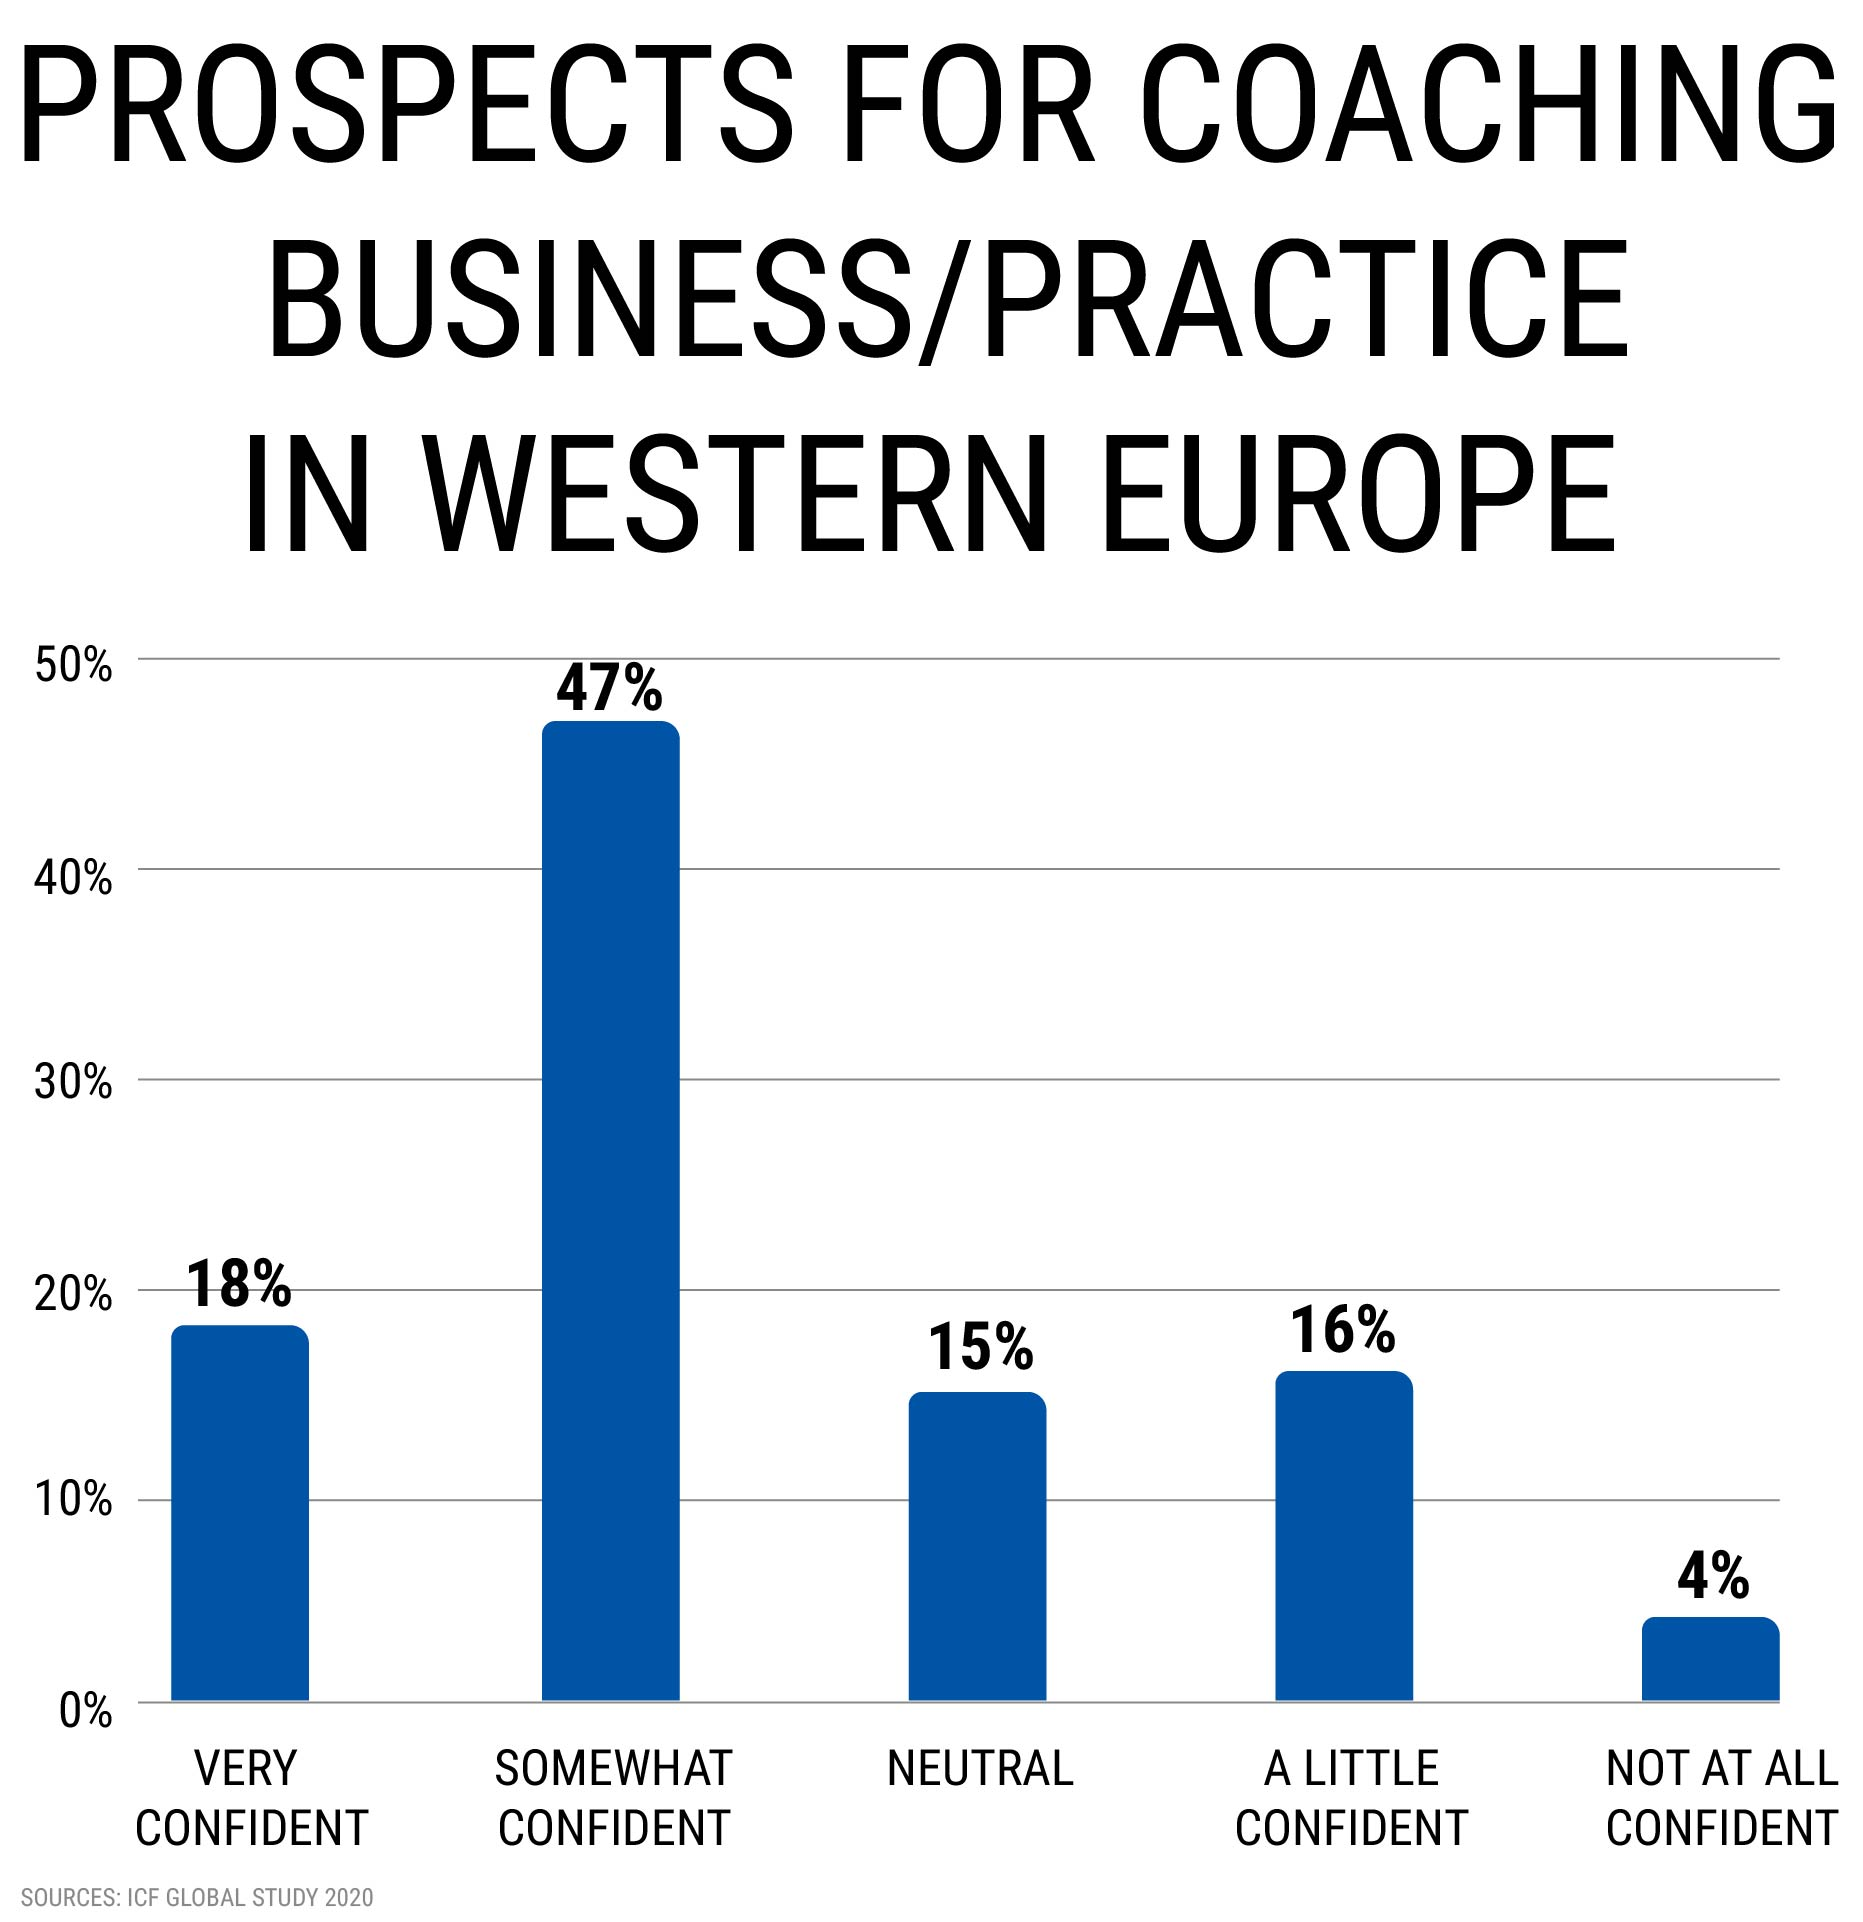 PROSPECTS FOR COACHING BUSINESS/PRACTICE IN WESTERN EUROPE